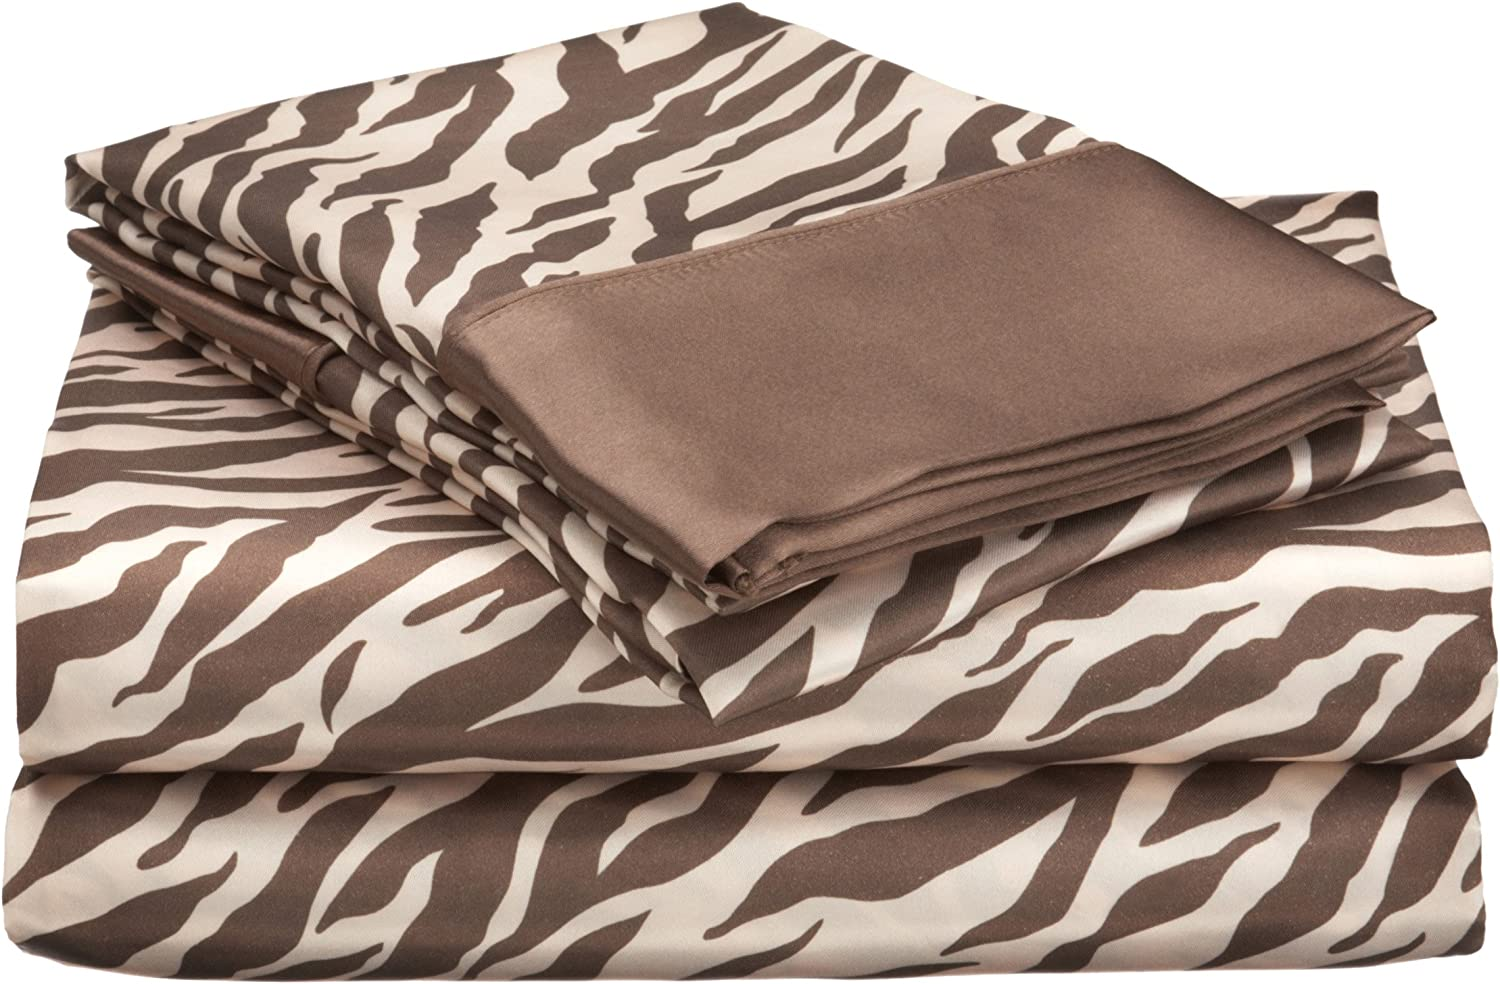 Divatex Home Fashions Royal Opulance Satin Cal King Sheet Set, Zebra, Brown/Ivory